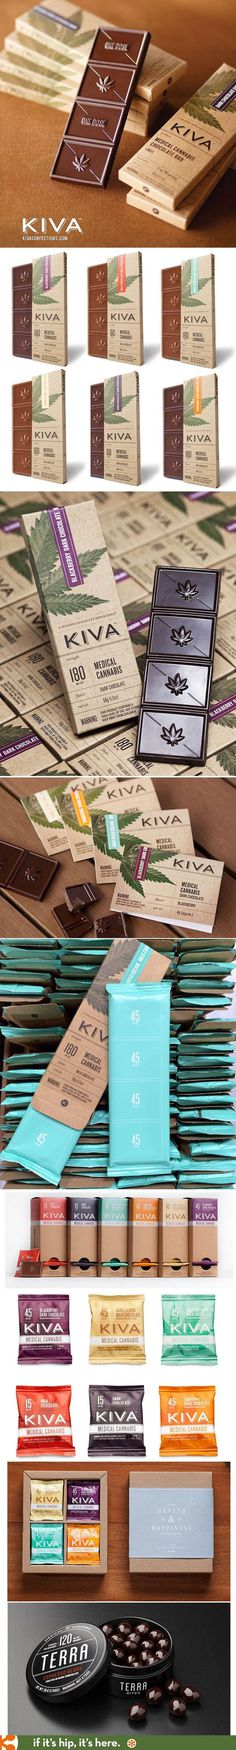 Kiva Confections #packaging #graphic design